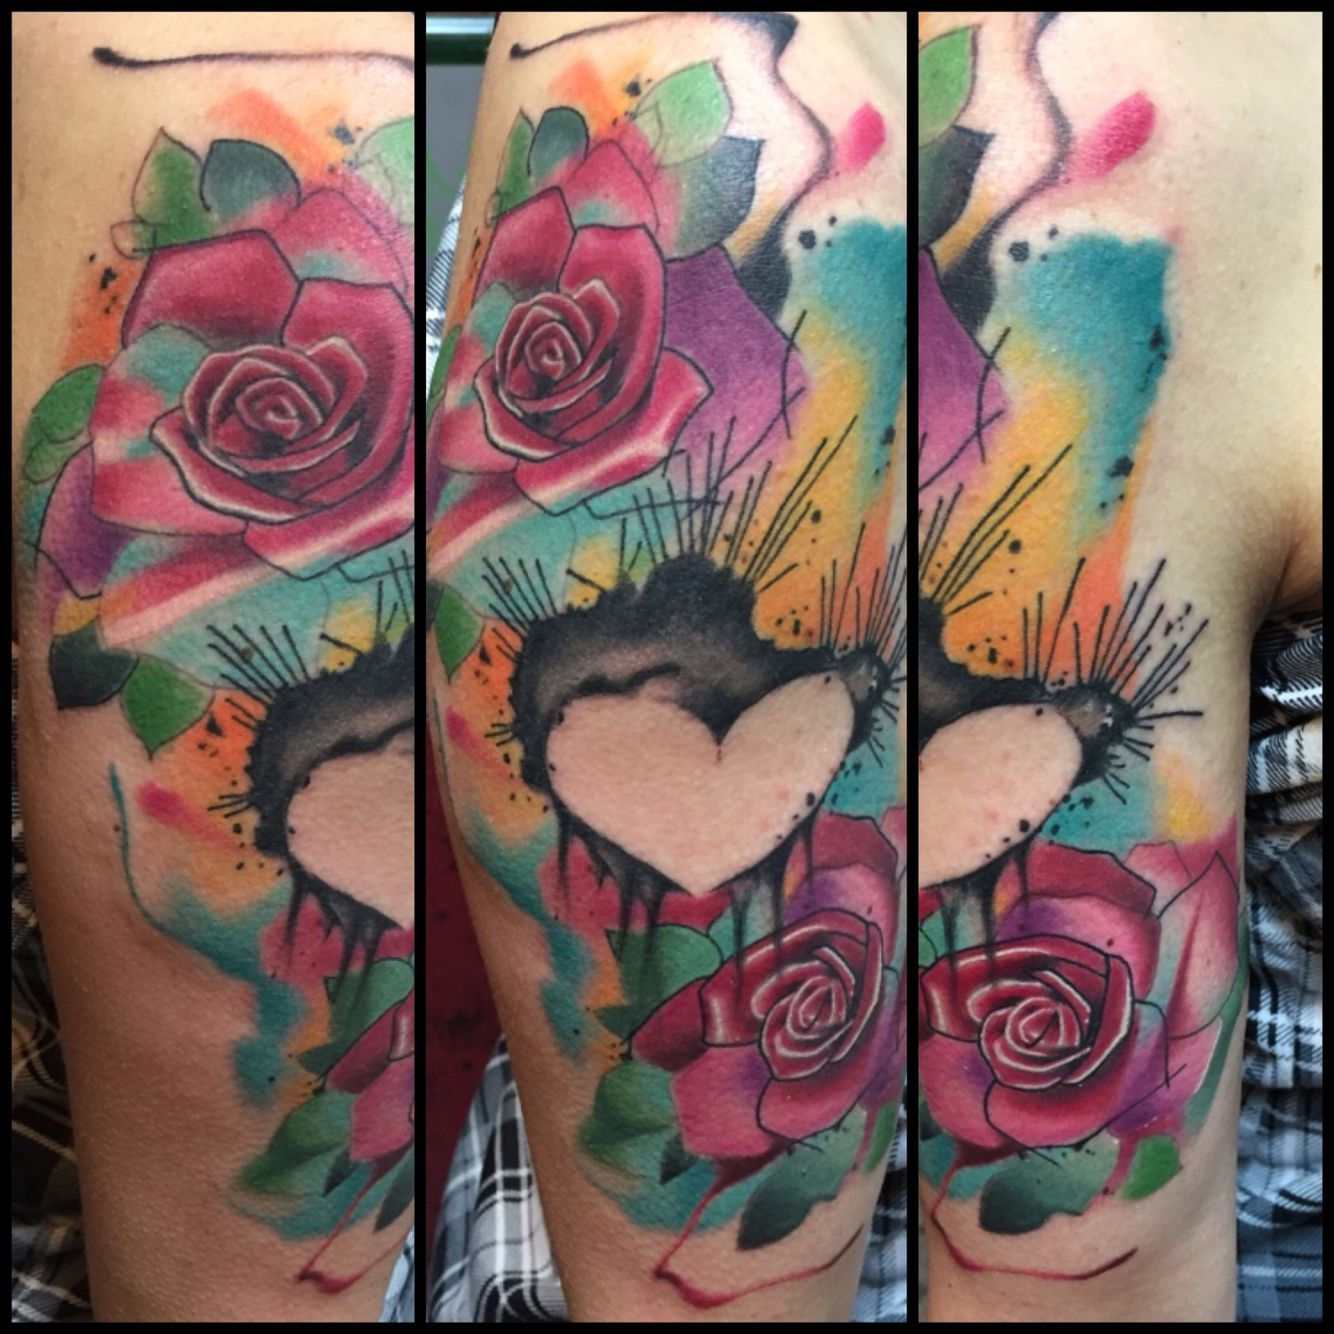 Watercolor tattoo artists in houston texas - Watercolor Tattoo By Elijah Nguyen At Skin Stories In Best Tattoo Artists In Houston